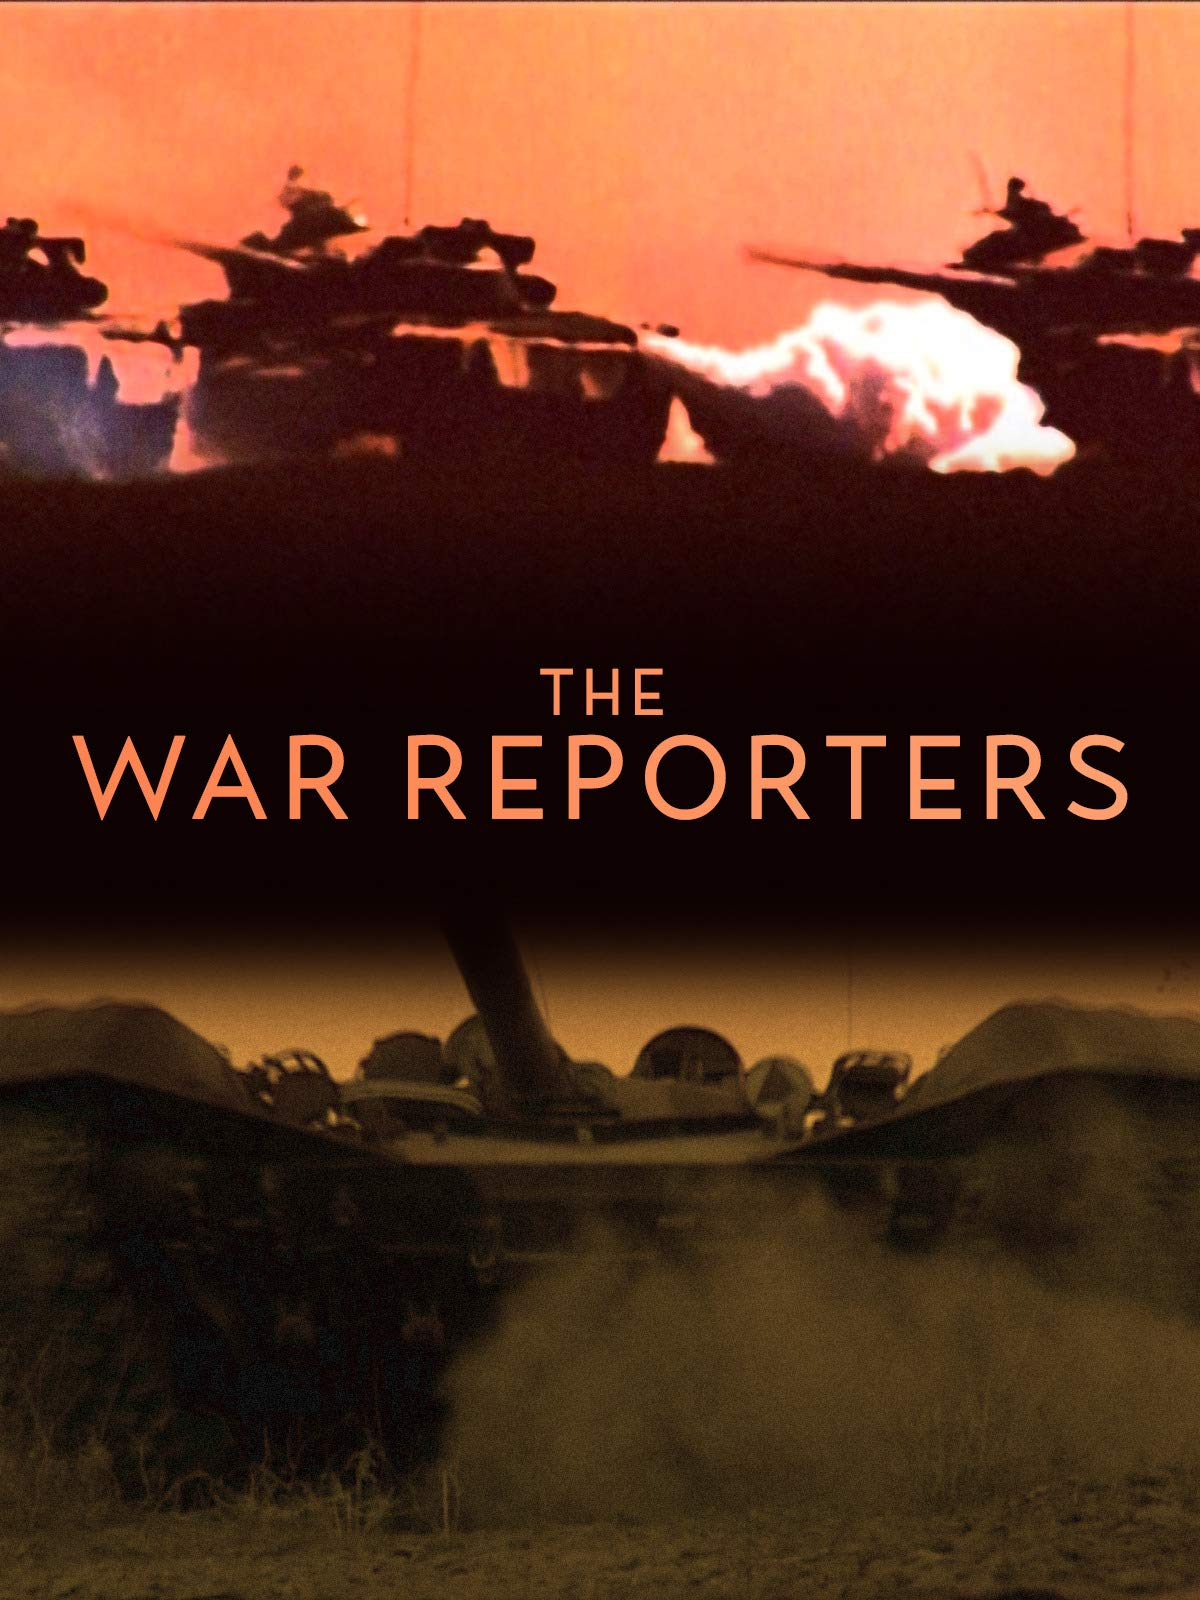 The War Reporters